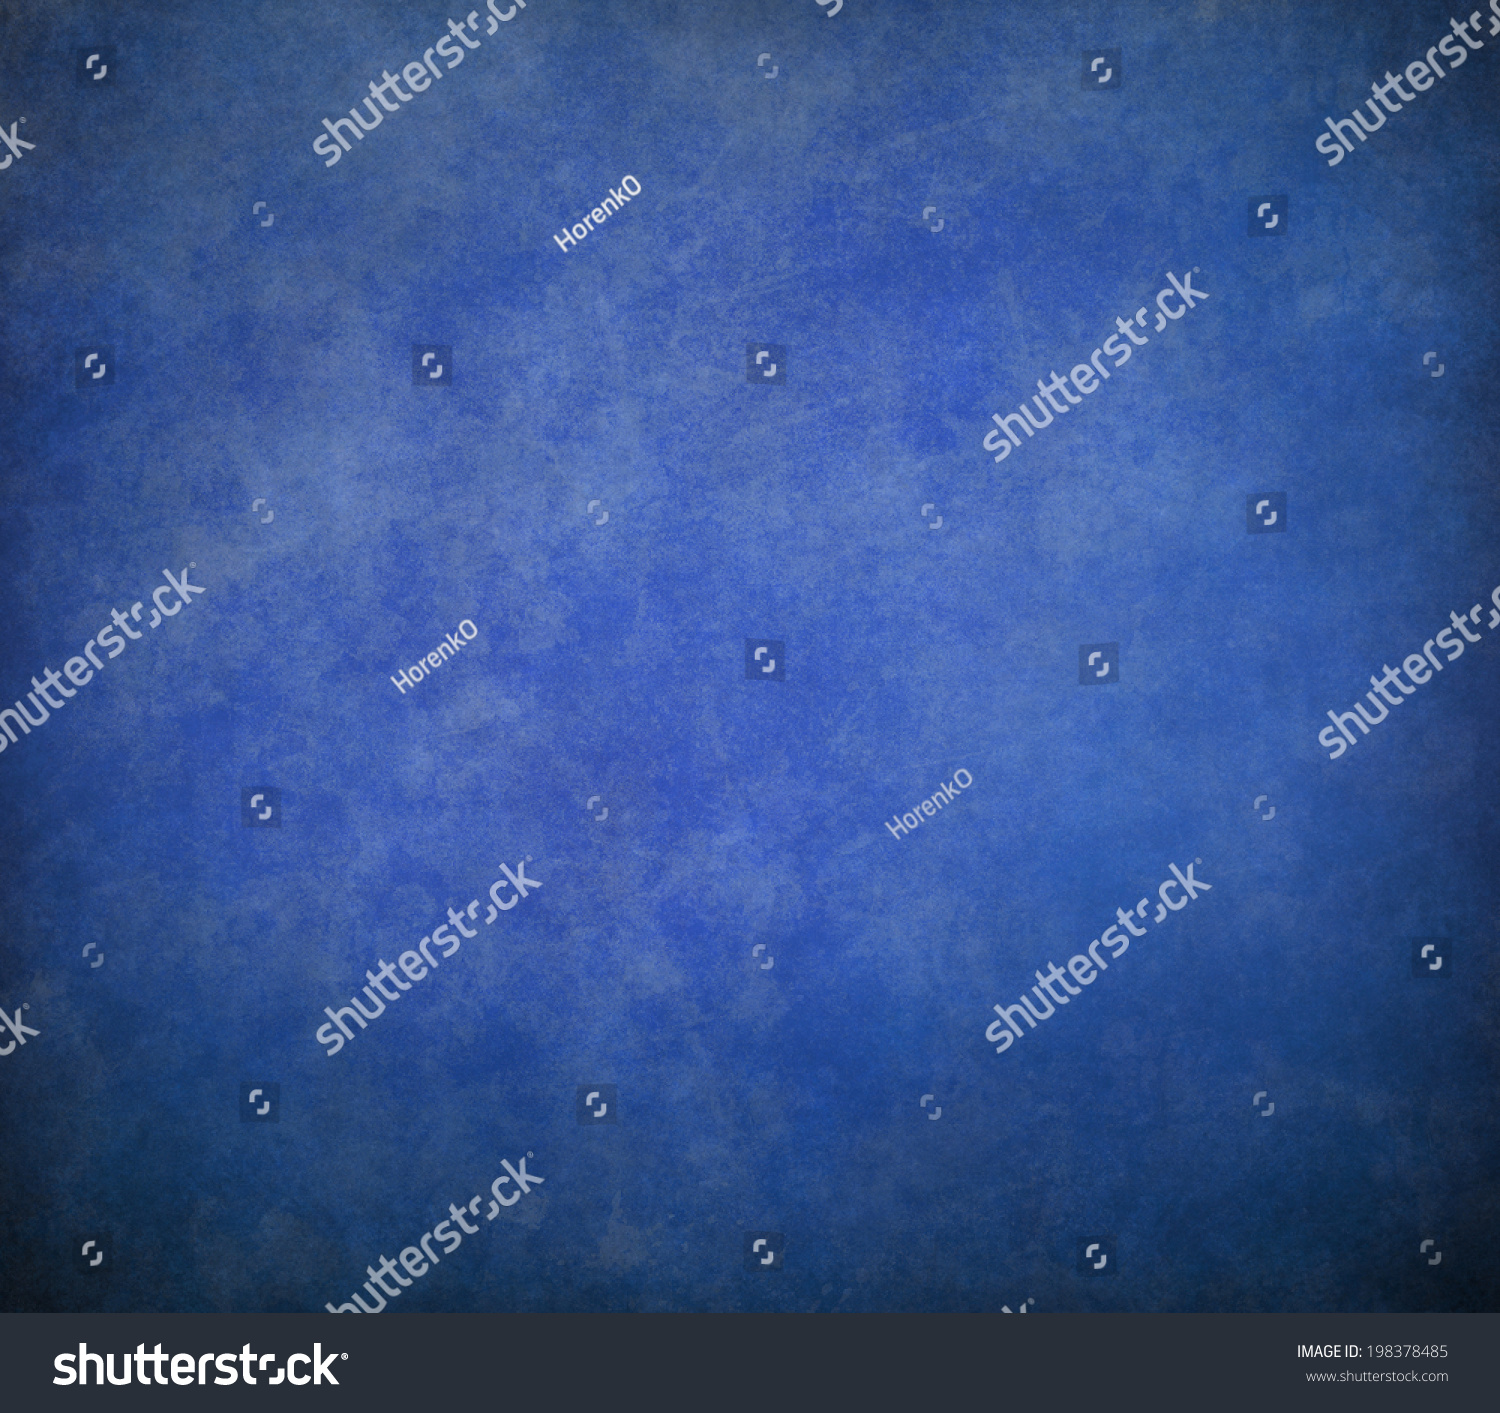 Cool Book Cover Backgrounds : Royal blue background black border cool stock illustration